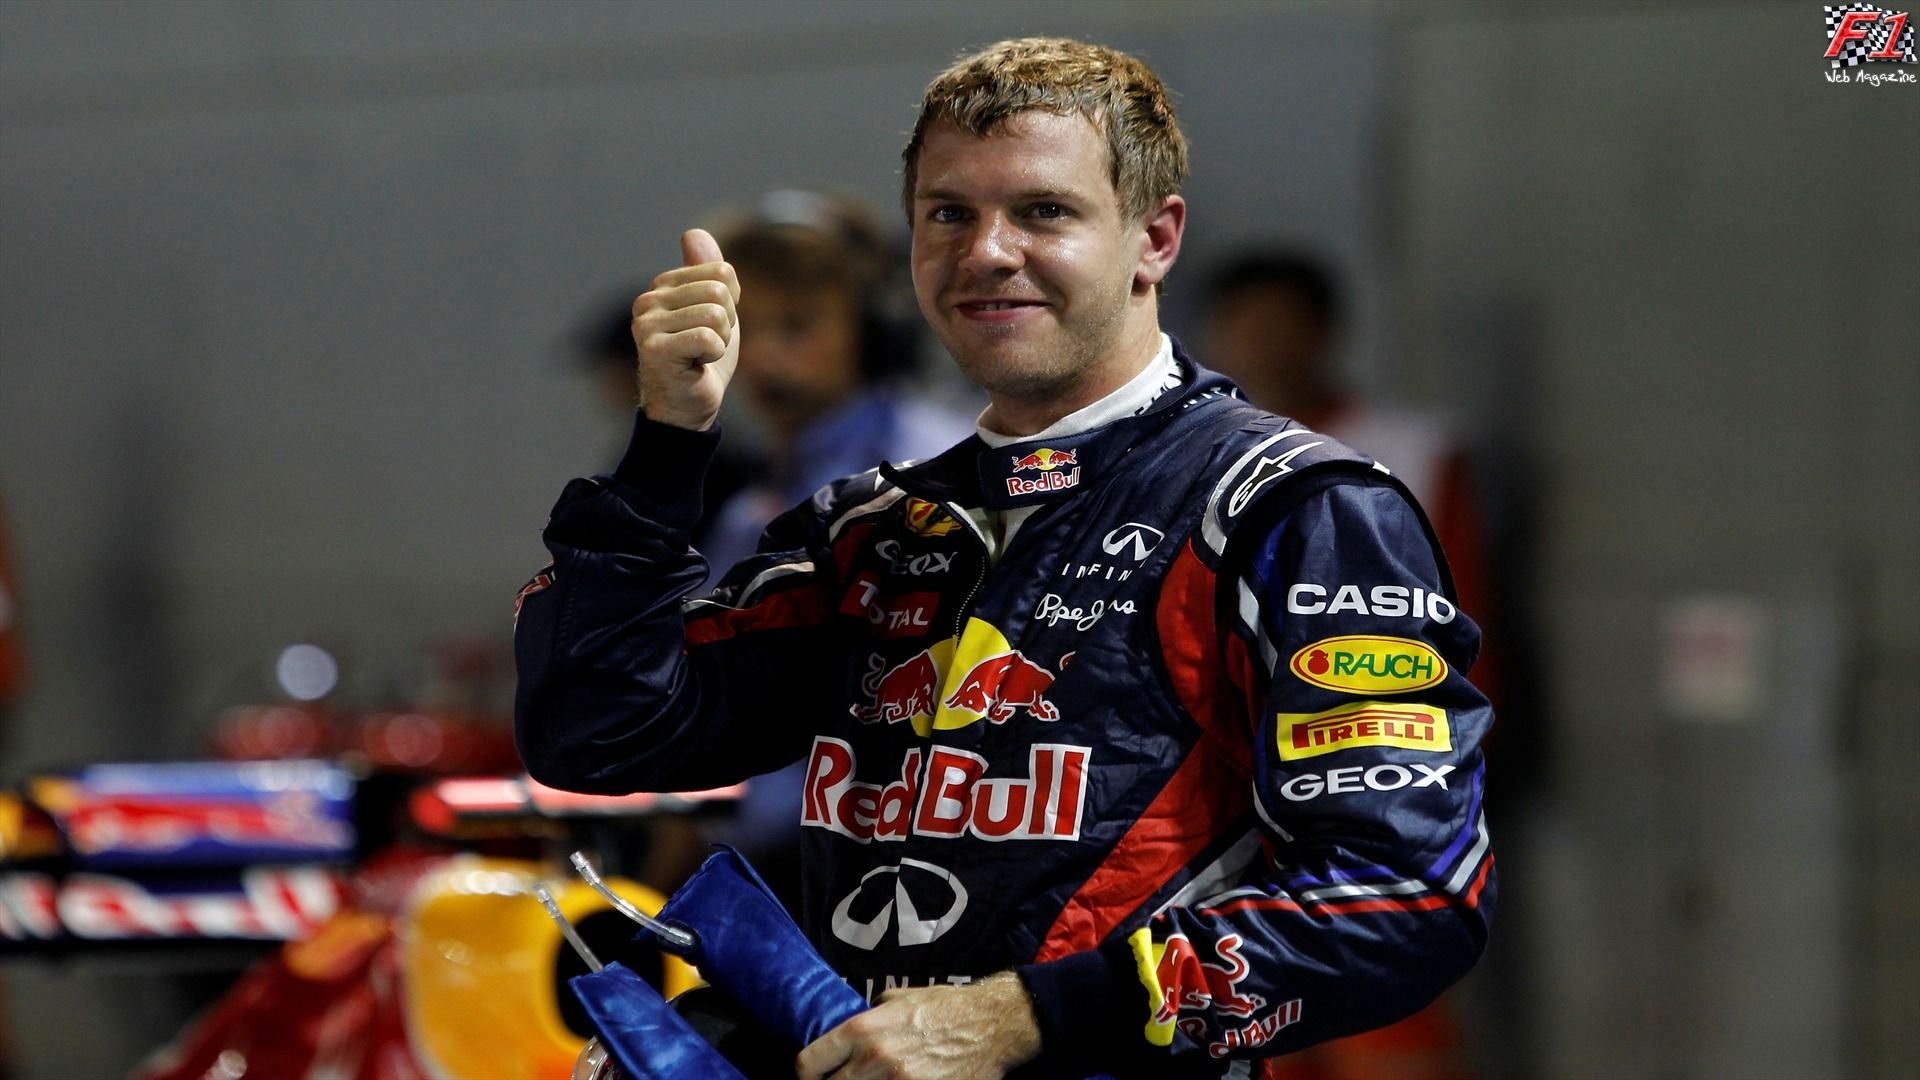 Gp Singapore - Qualifiche - CS Pirelli